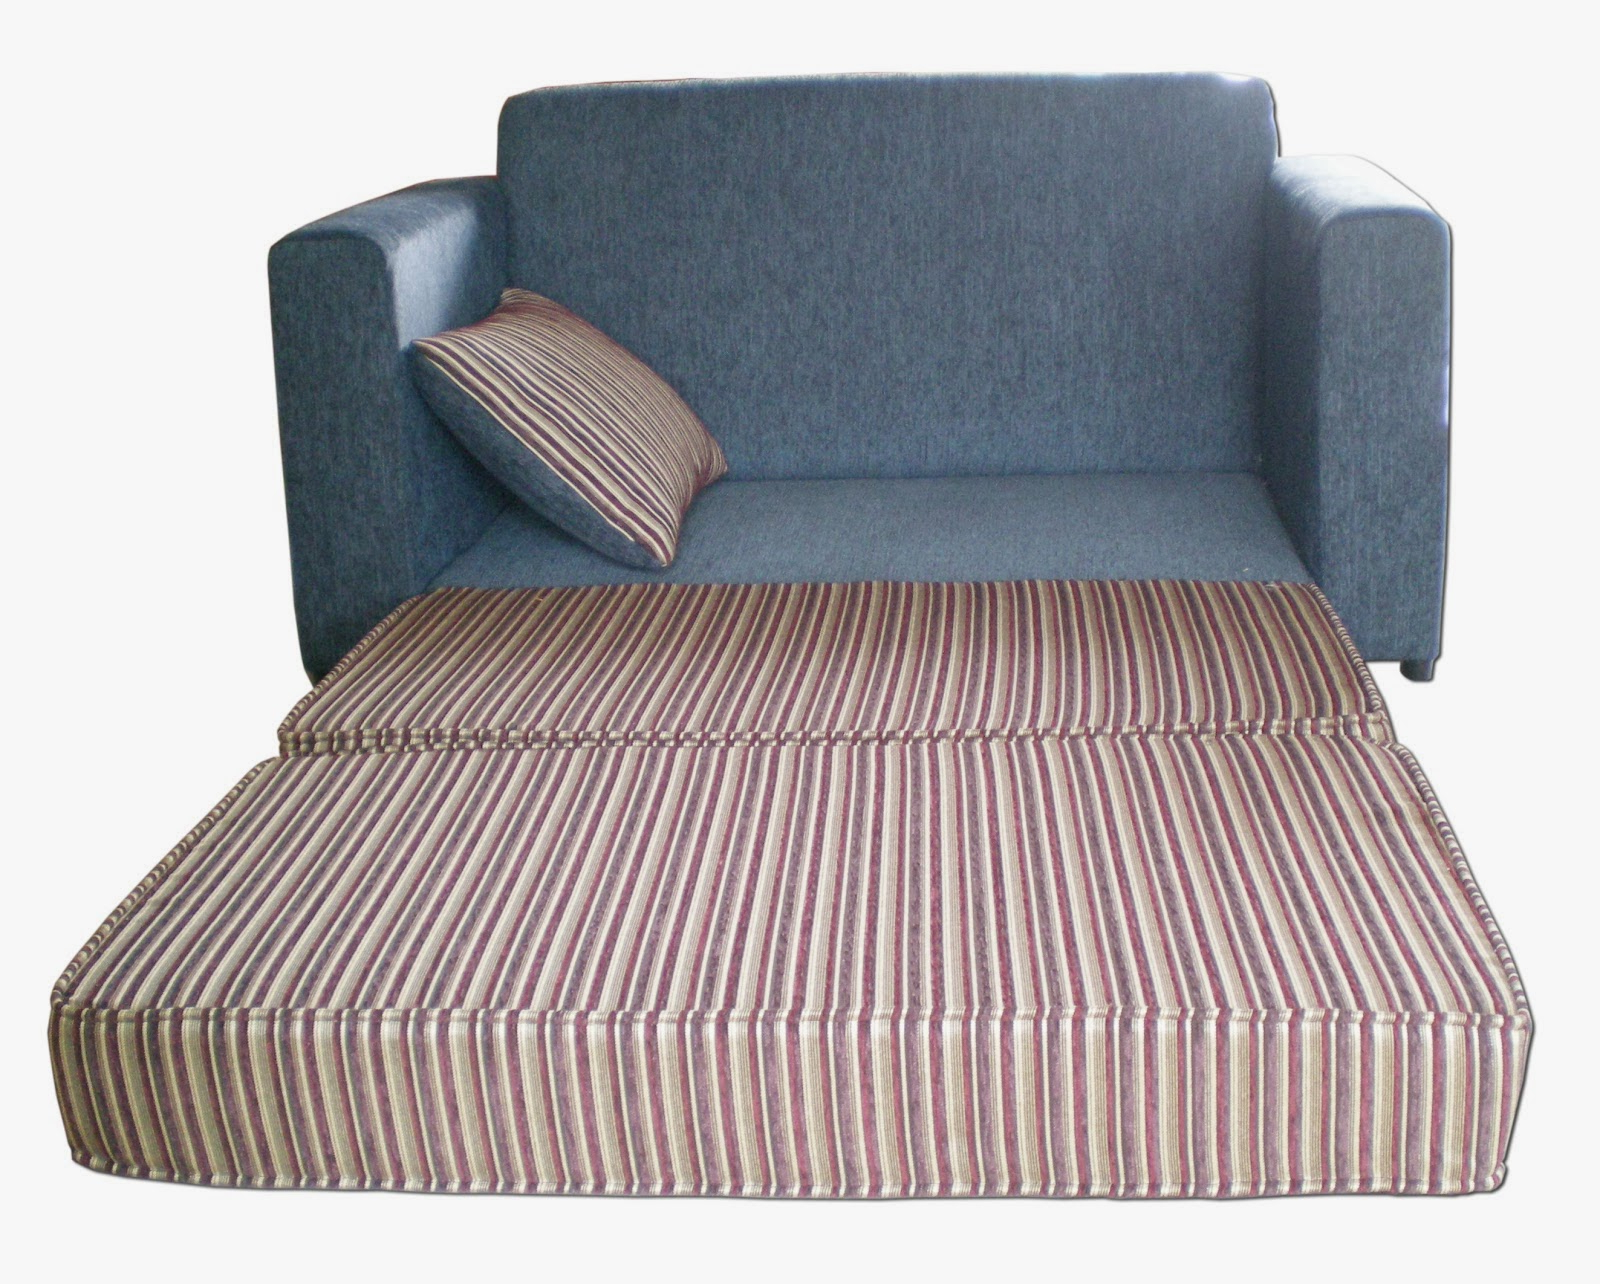 Single Sofa Bed Chairs Intended For 2018 Sleeper Sofa Single Couch Bed W Pull Out Chairs For Fold Mat Bed (View 16 of 20)